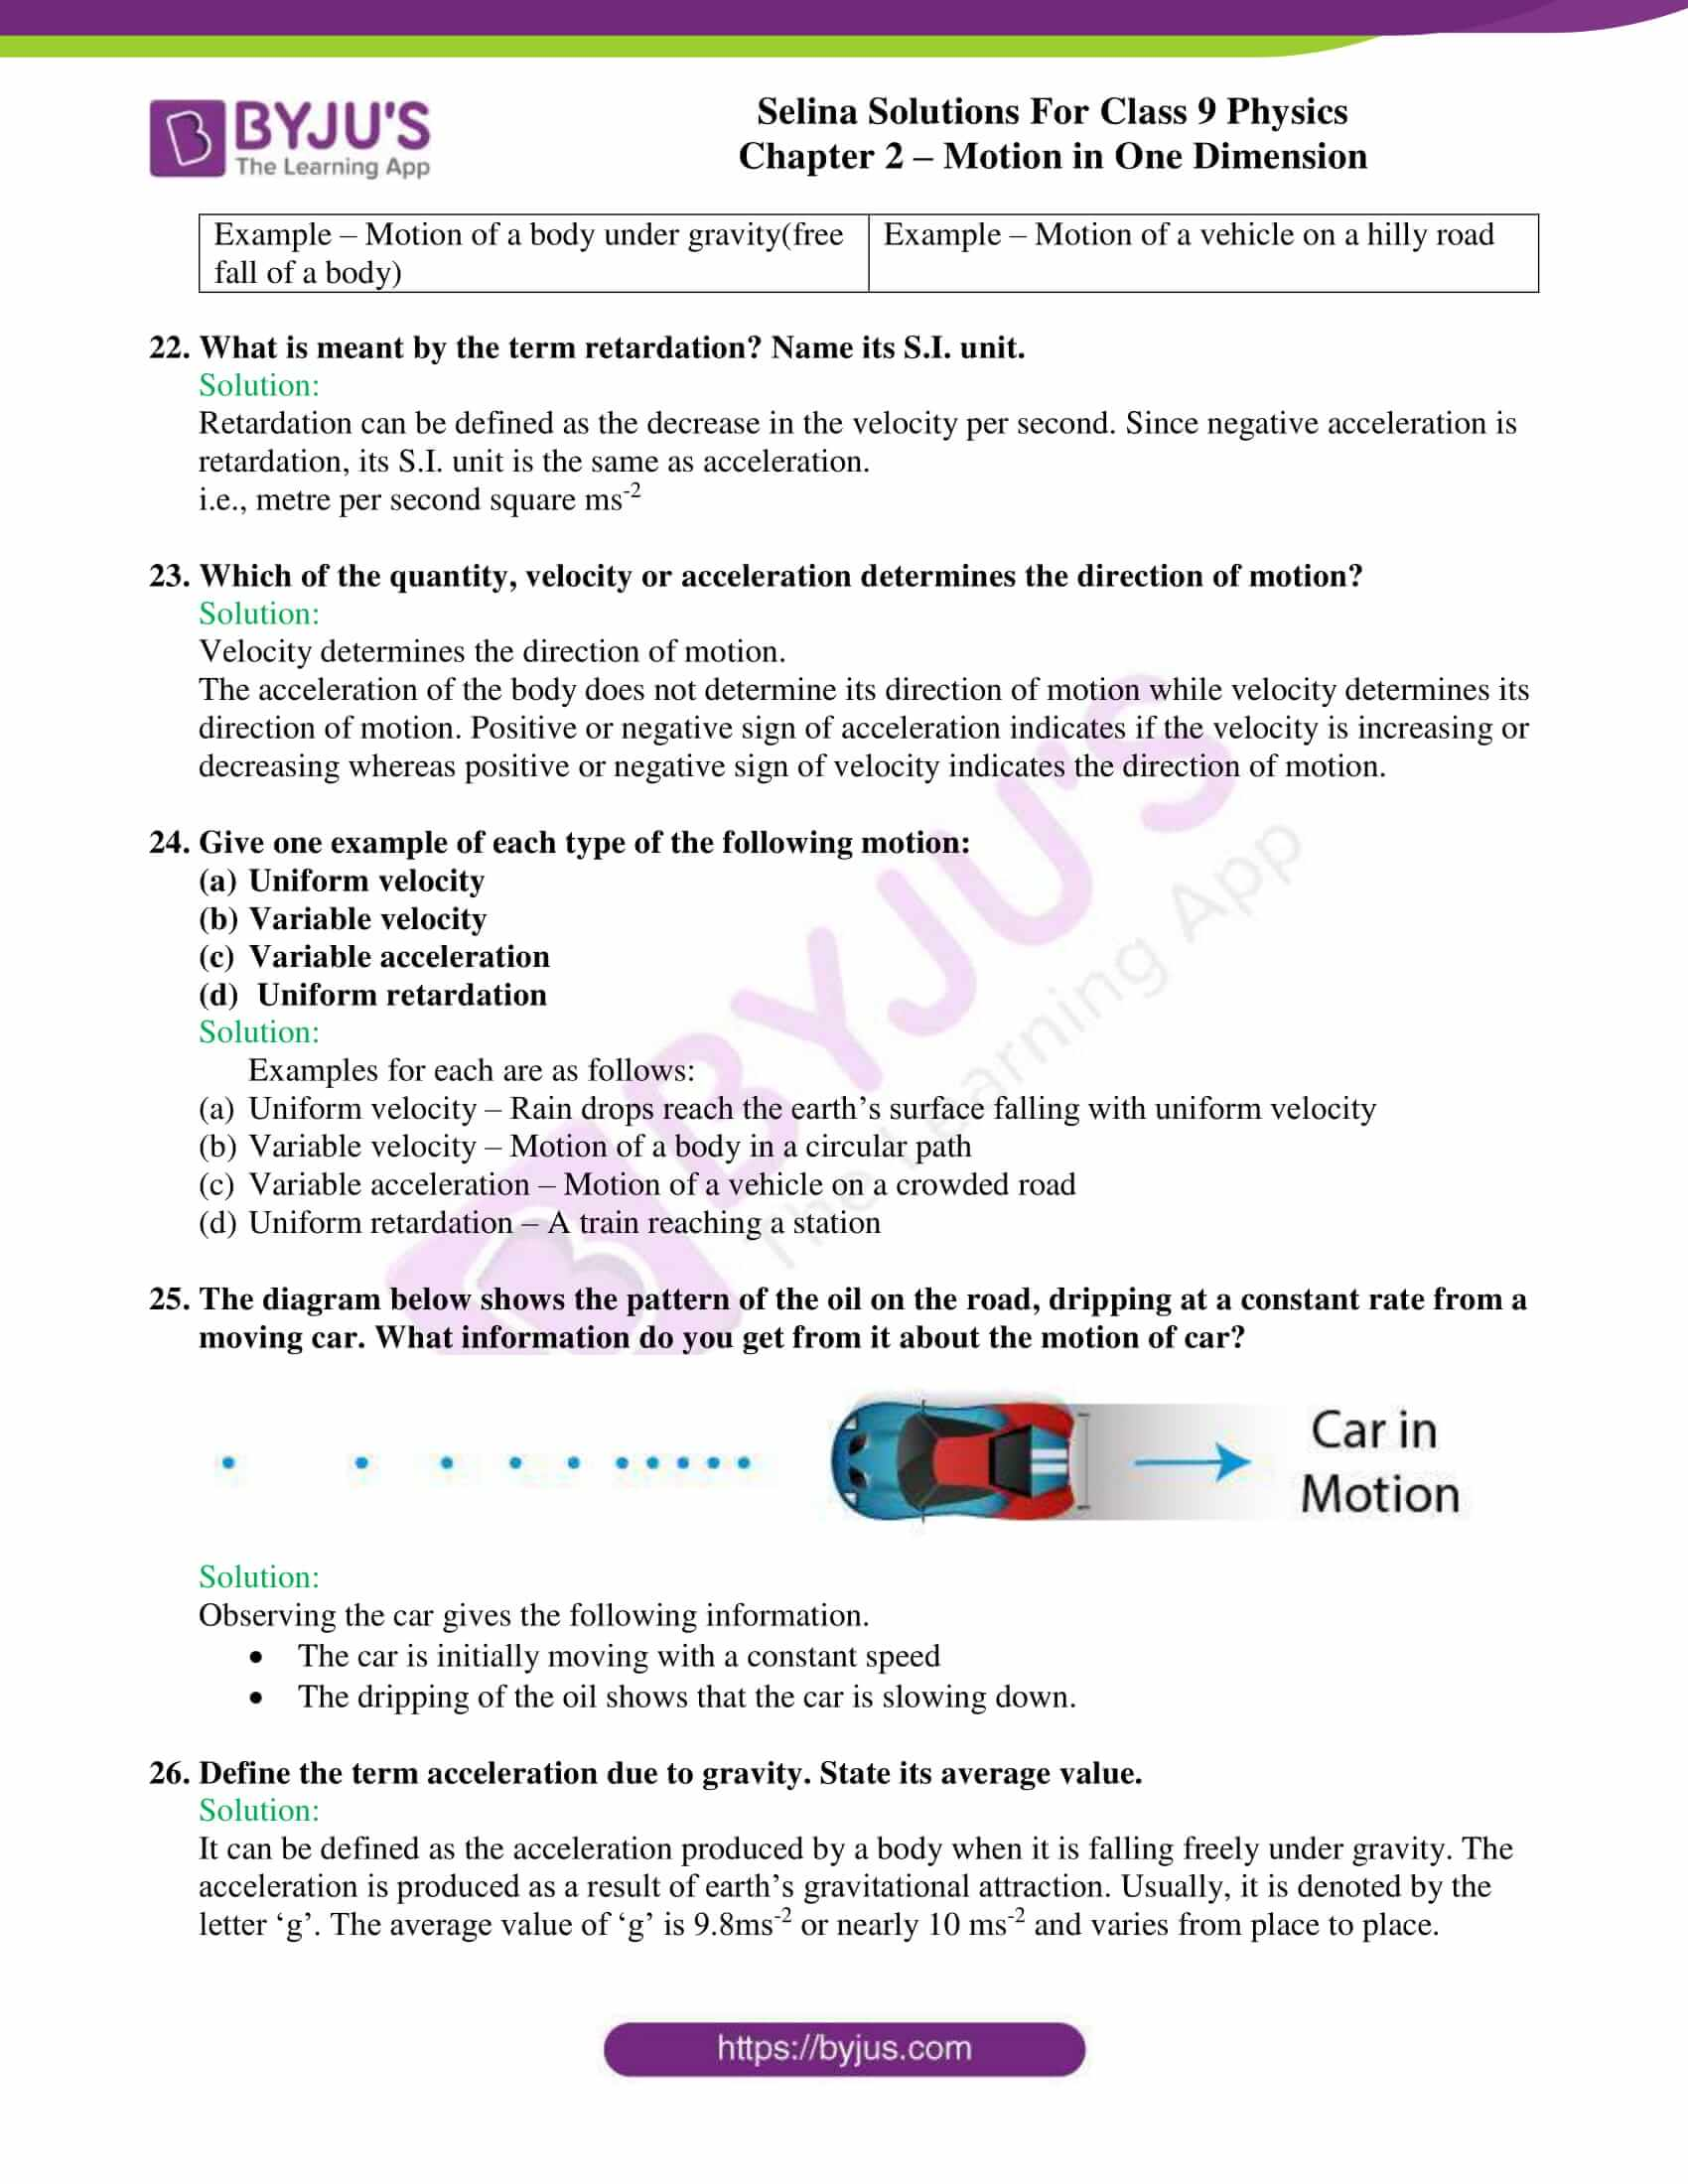 selina solutions class 9 physics chapter 2 Motion in One Dimension part 05